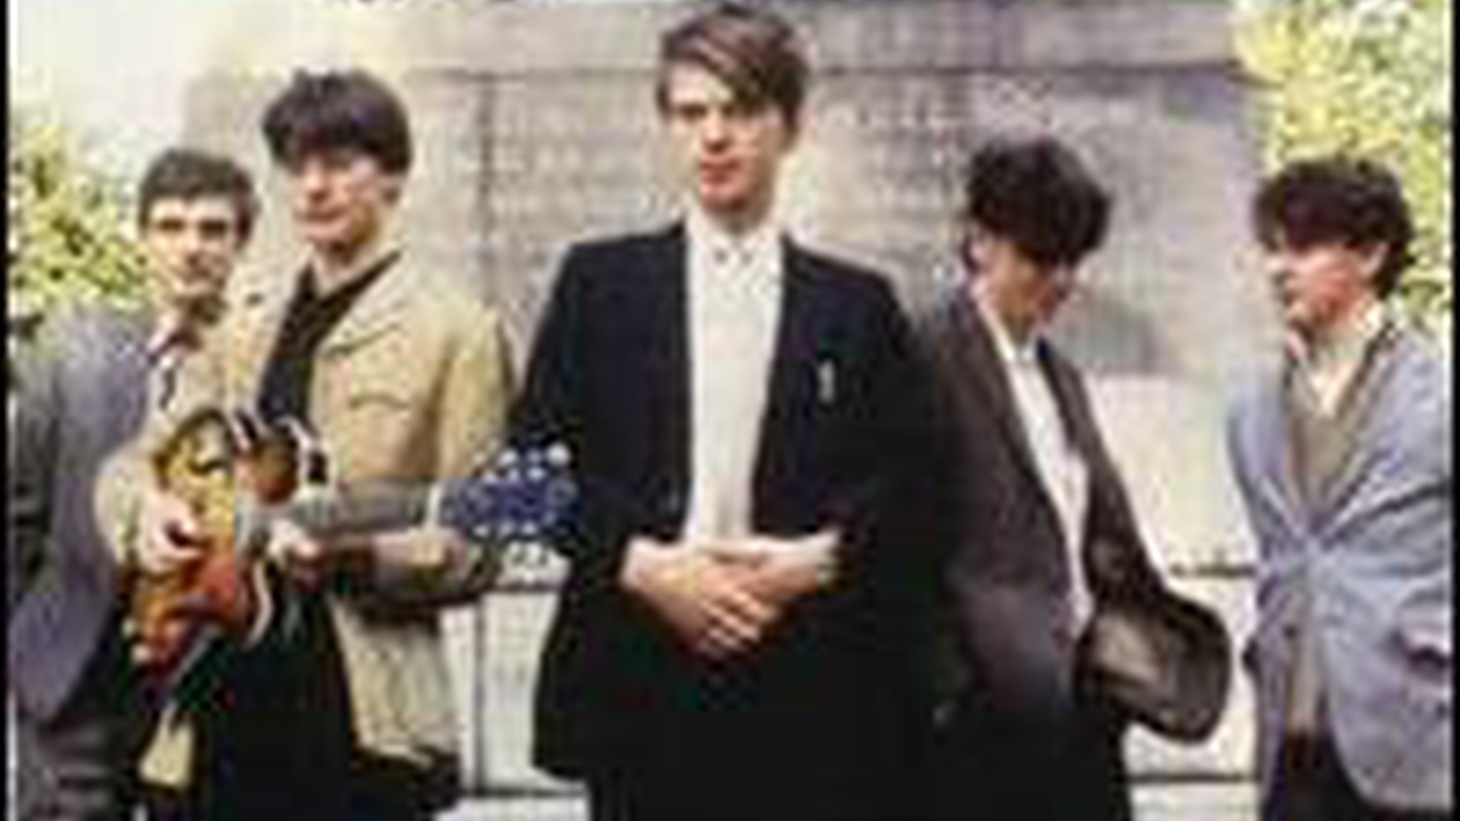 """In 1979, the Scottish band Orange Juice, lead by Edwyn Collins, opted for a more romantic sound to counteract the height of the punk movement. Their literate pop songs pre-date The Smiths and it's no wonder that Today's Top Tune, """"Felicity,"""" from the band's Coals to Newcastle album, is one of Morrissey's all time favorite Orange Juice songs."""